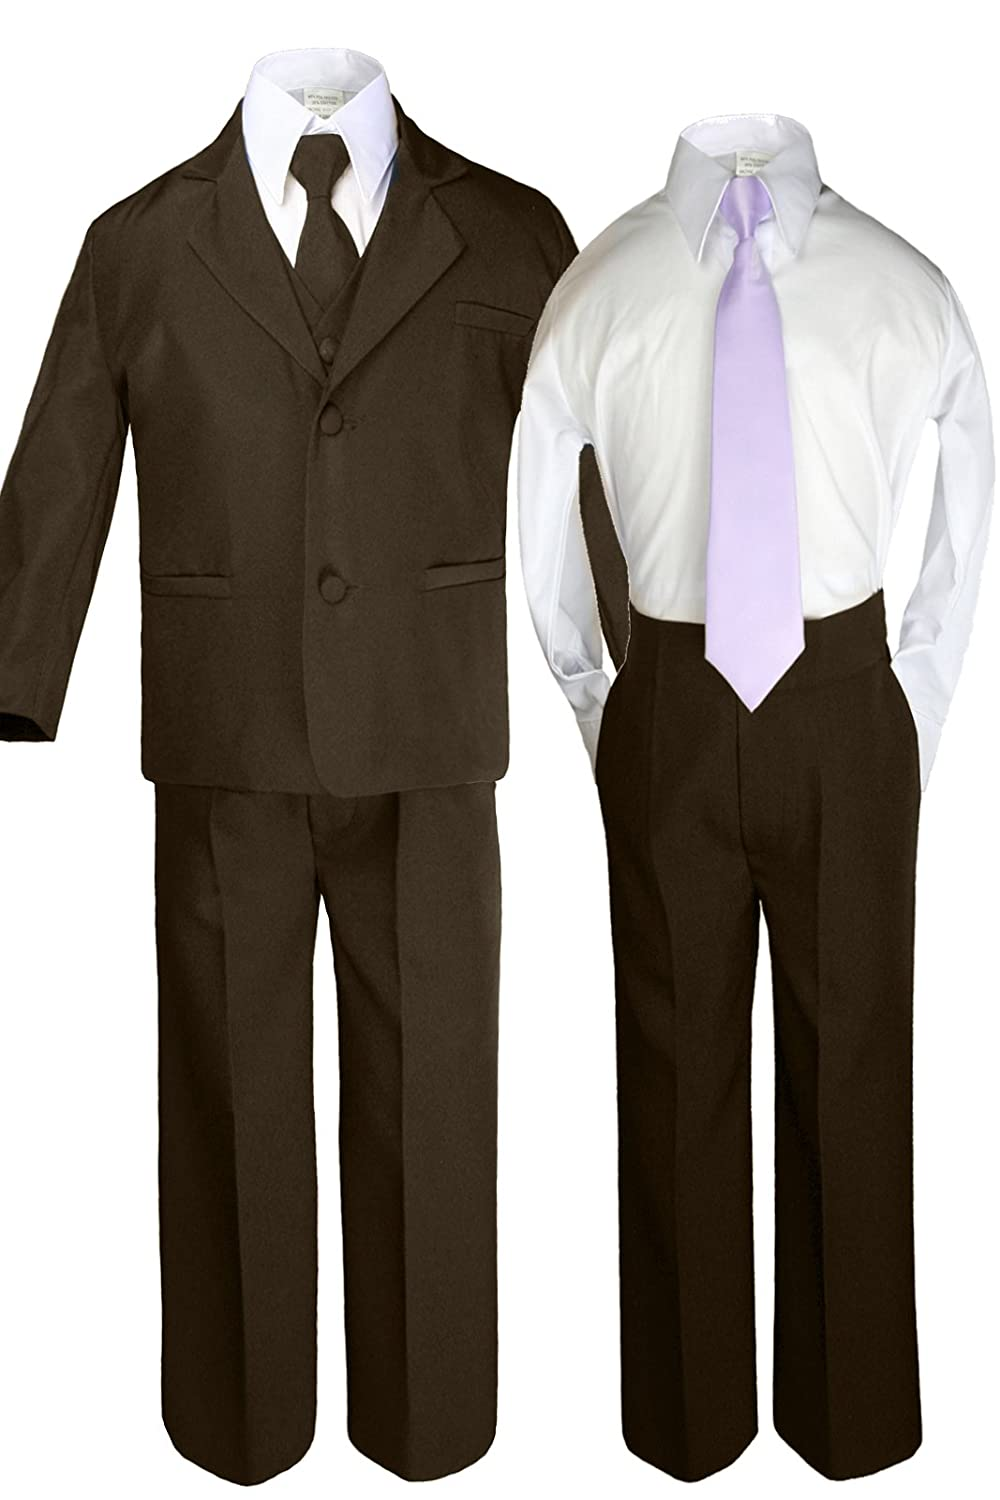 Unotux 6pc Boys Dark Brown Suits Sets with Satin Lilac Necktie Outfits All Size